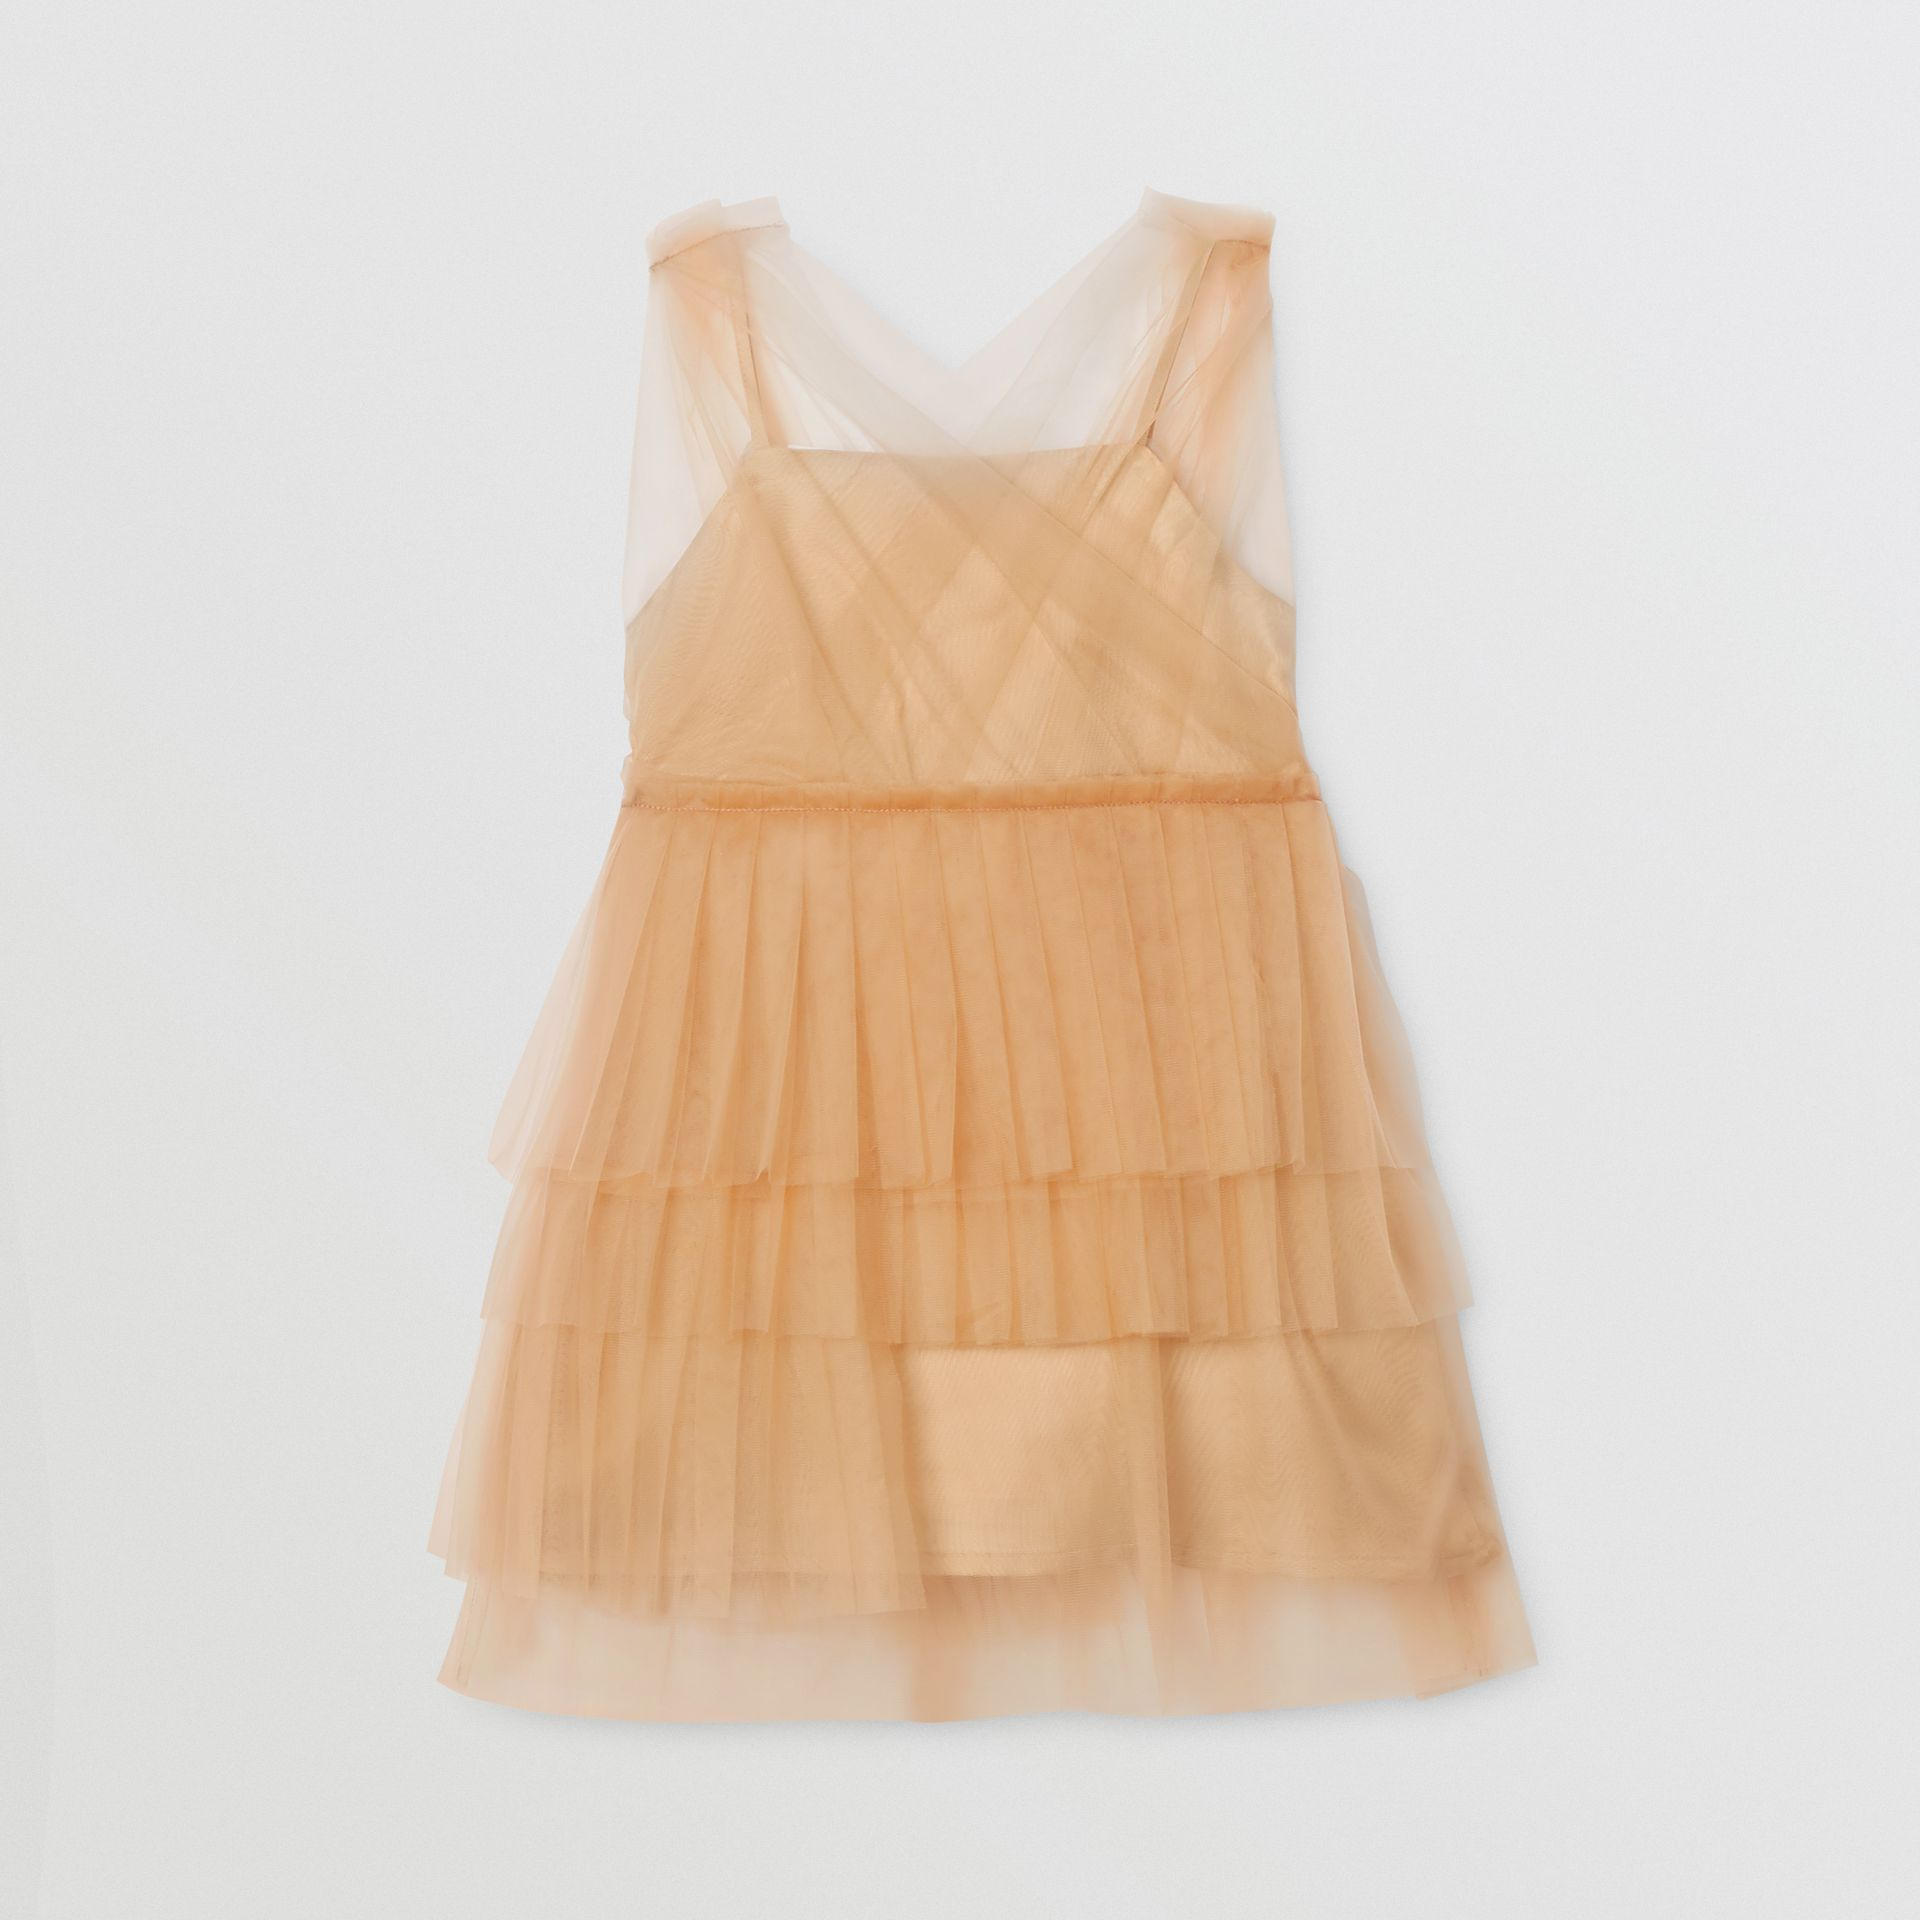 Tulle Tiered Dress in Oyster Beige - Children | Burberry - gallery image 3